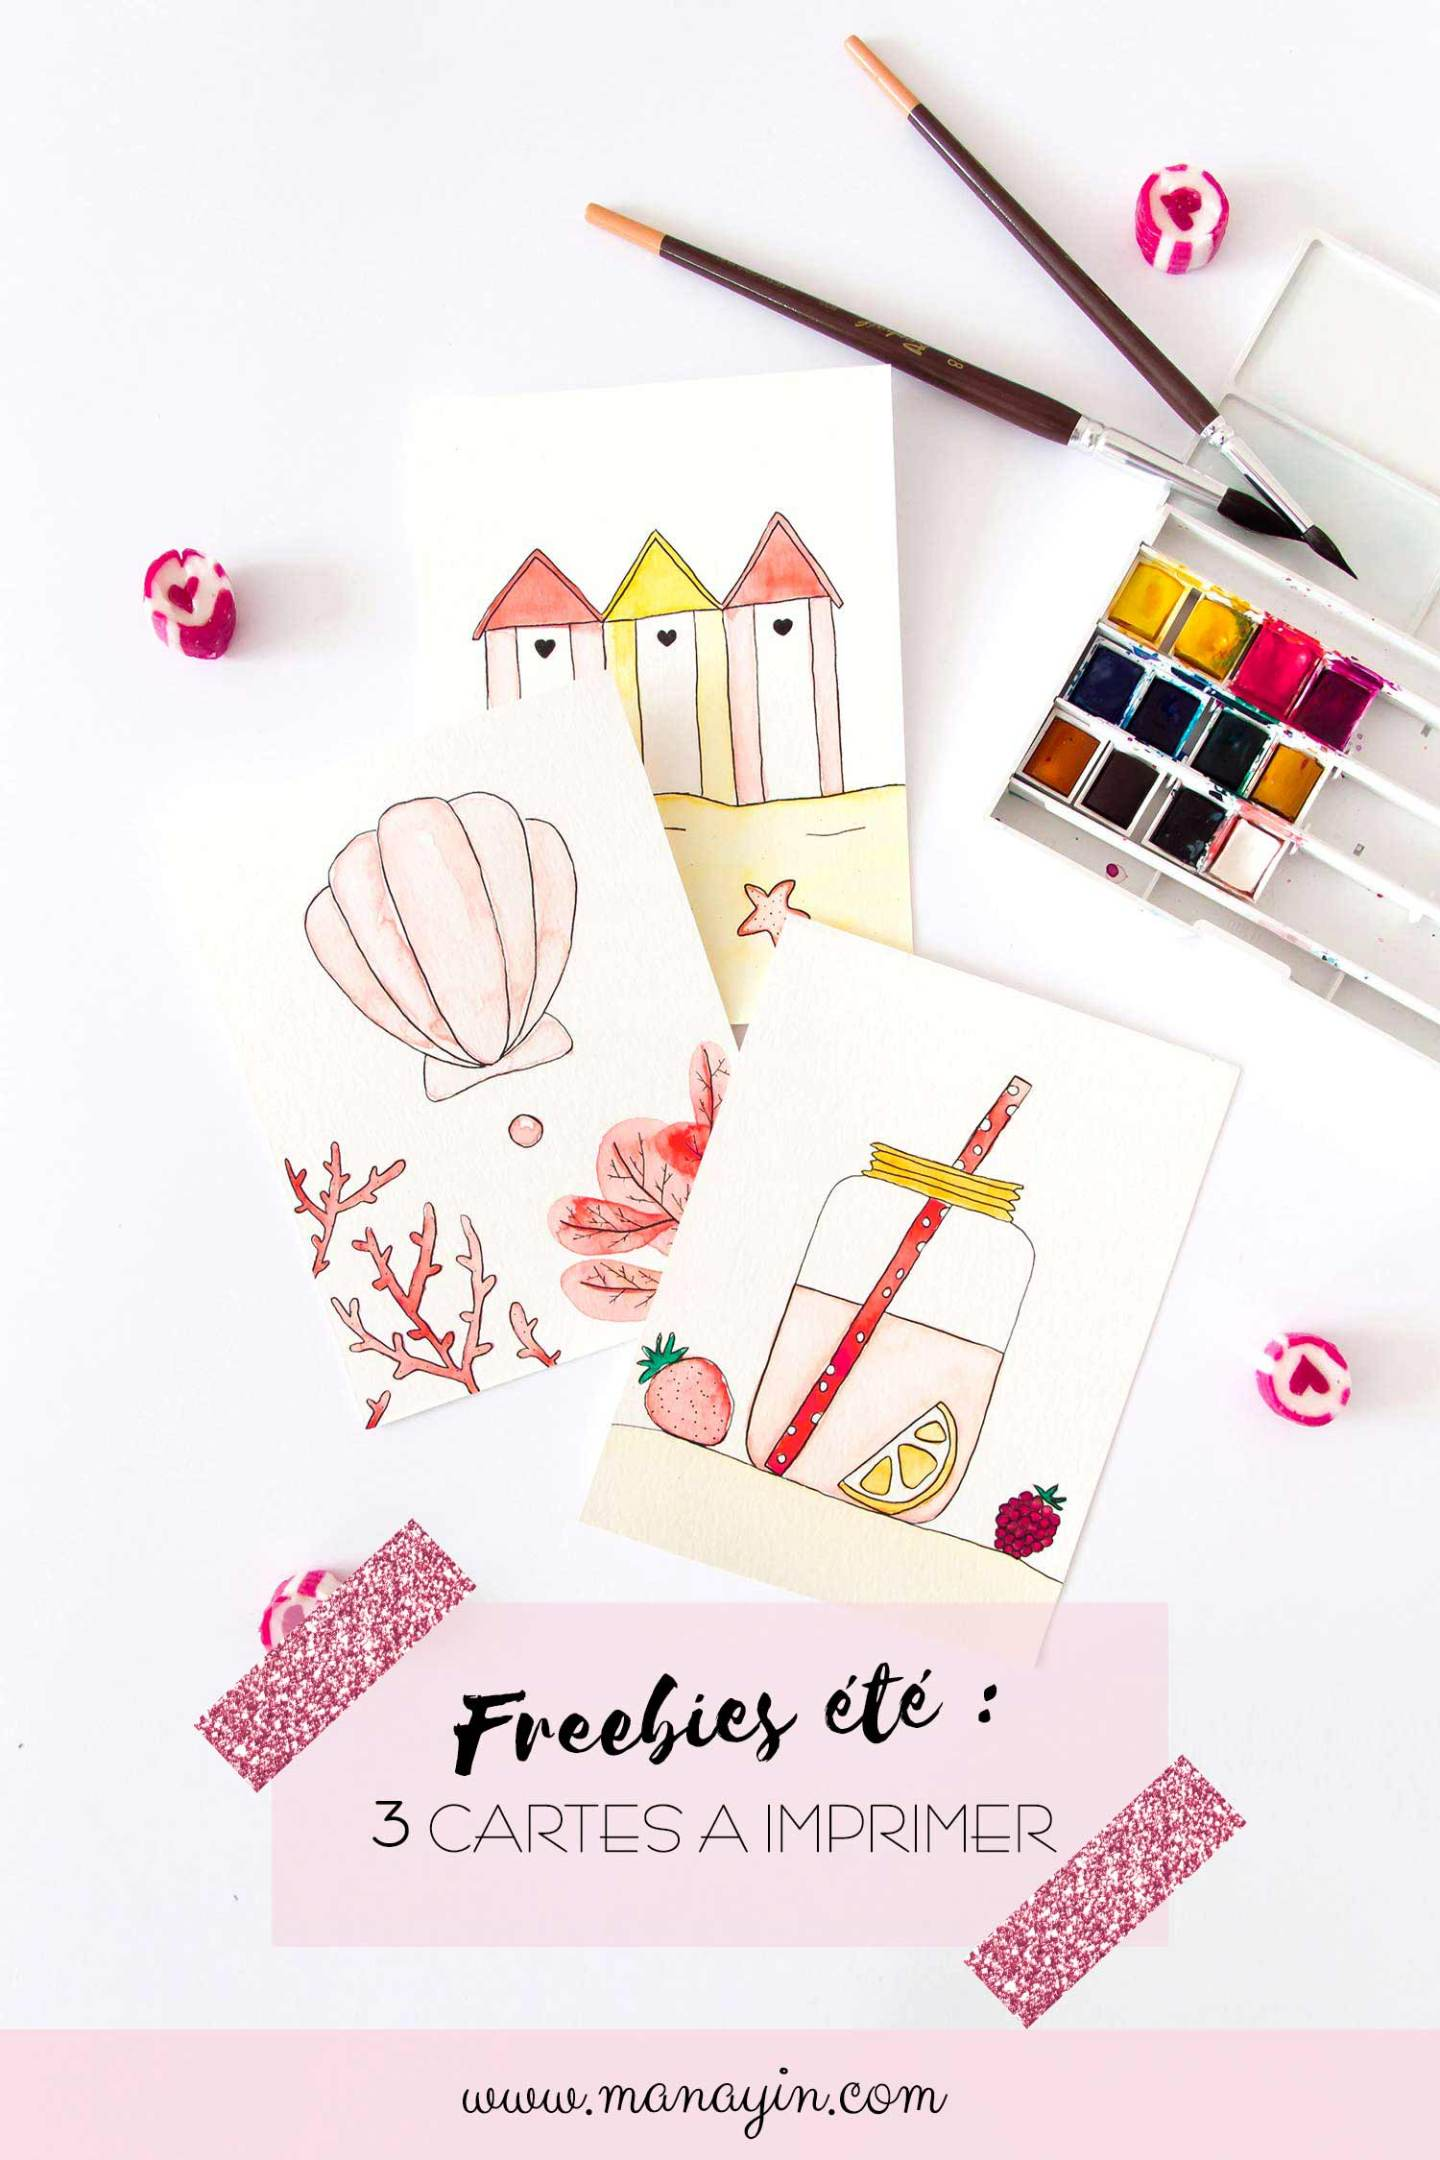 Freebies été : 3 cartes à l'aquarelle à imprimer